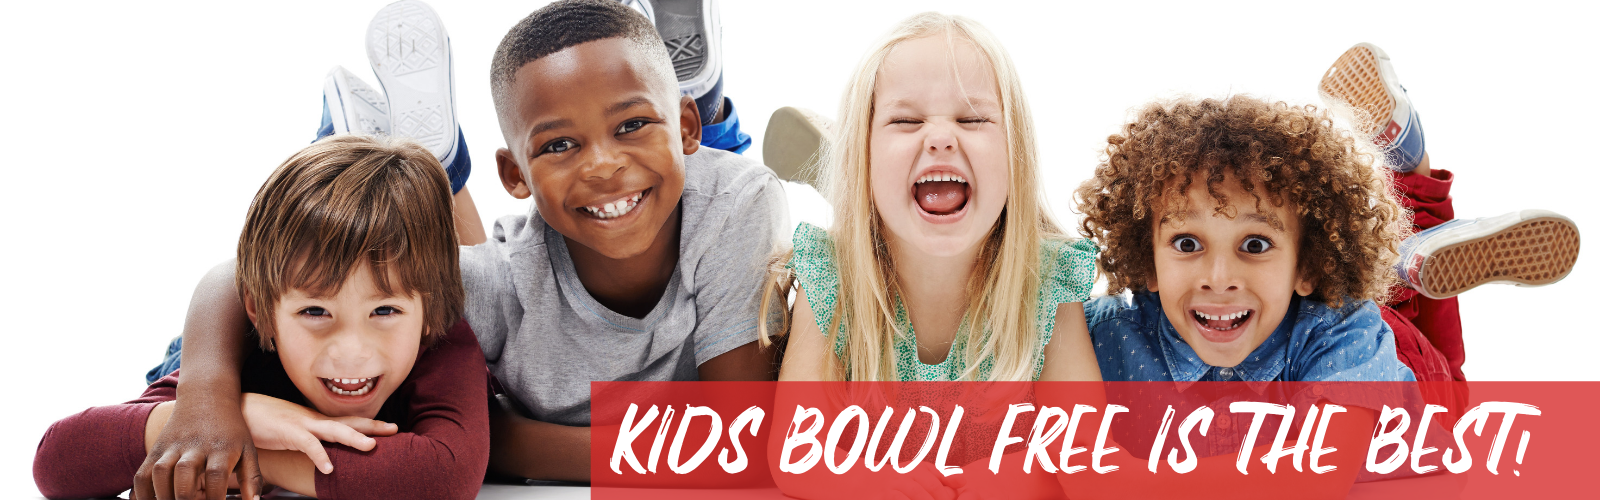 KIDS BOWL FREE IS THE BEST!